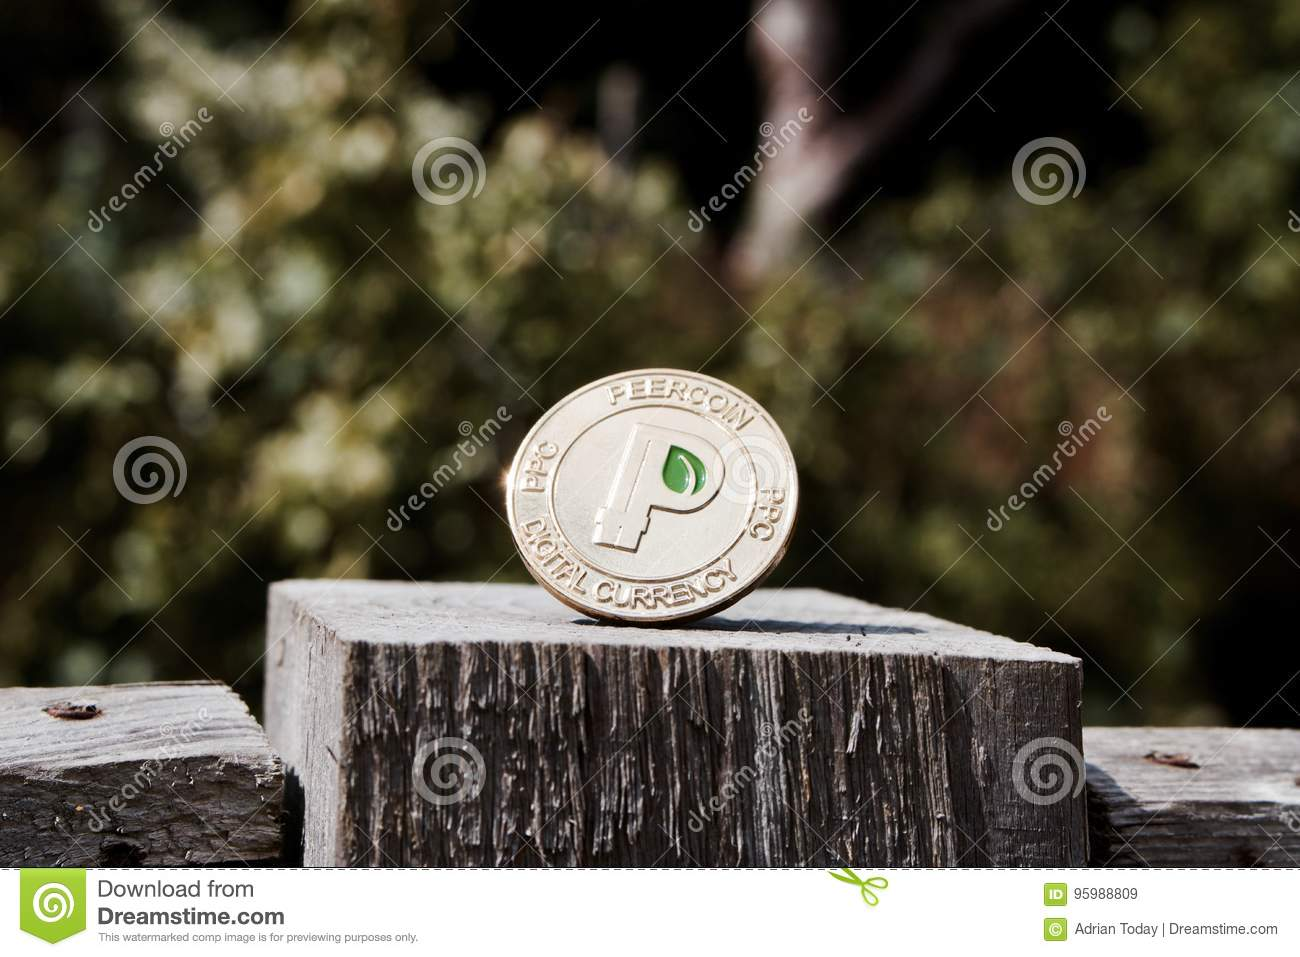 Gold peercoin coin stock image. Image of peercoin, outdoor - 95988809